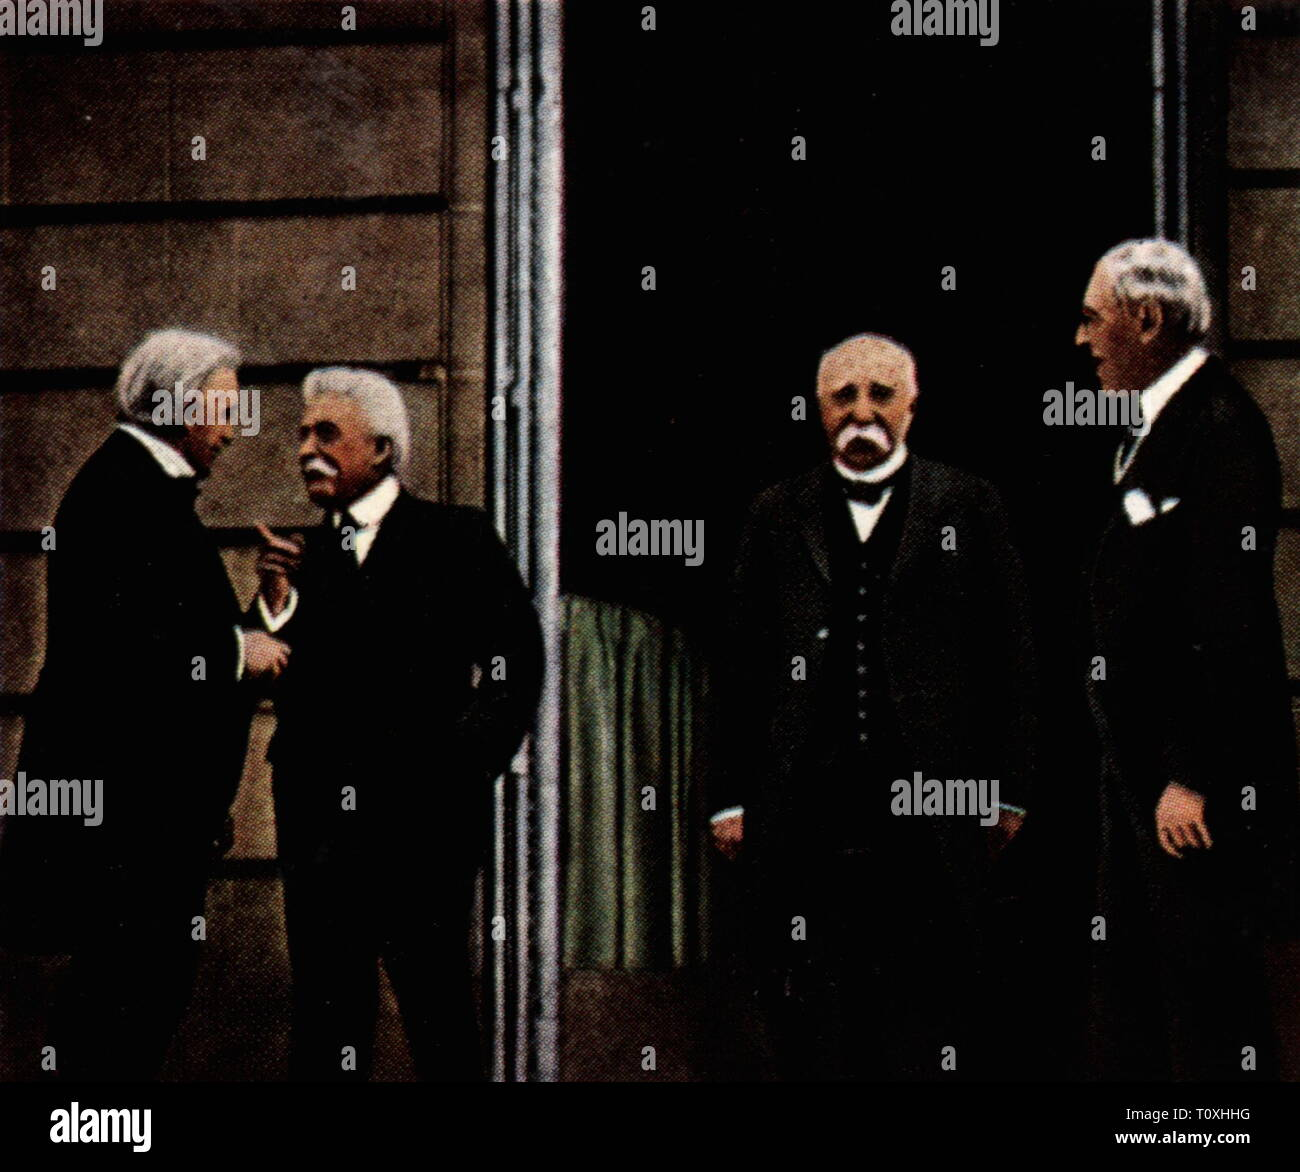 politics, conferences, Paris Peace Conference 18.1.1919 - 21.1.1920, from left: American president Woodrow Wilson, president of the Italian council of ministers Vittorio Emanuele Orlando, British Prime Minister David Lloyd George, French Prime Minister Georges Clemenceau, Versailles, 27.7.1919, coloured photograph, cigarette card, series 'Die Nachkriegszeit', 1935, Paris, USA, United States of America, Kingdom of Italy, United kingdom of Great Britain, republic France, Third Republic, the big four, First World War / WWI, politician, politicians, , Additional-Rights-Clearance-Info-Not-Available - Stock Image